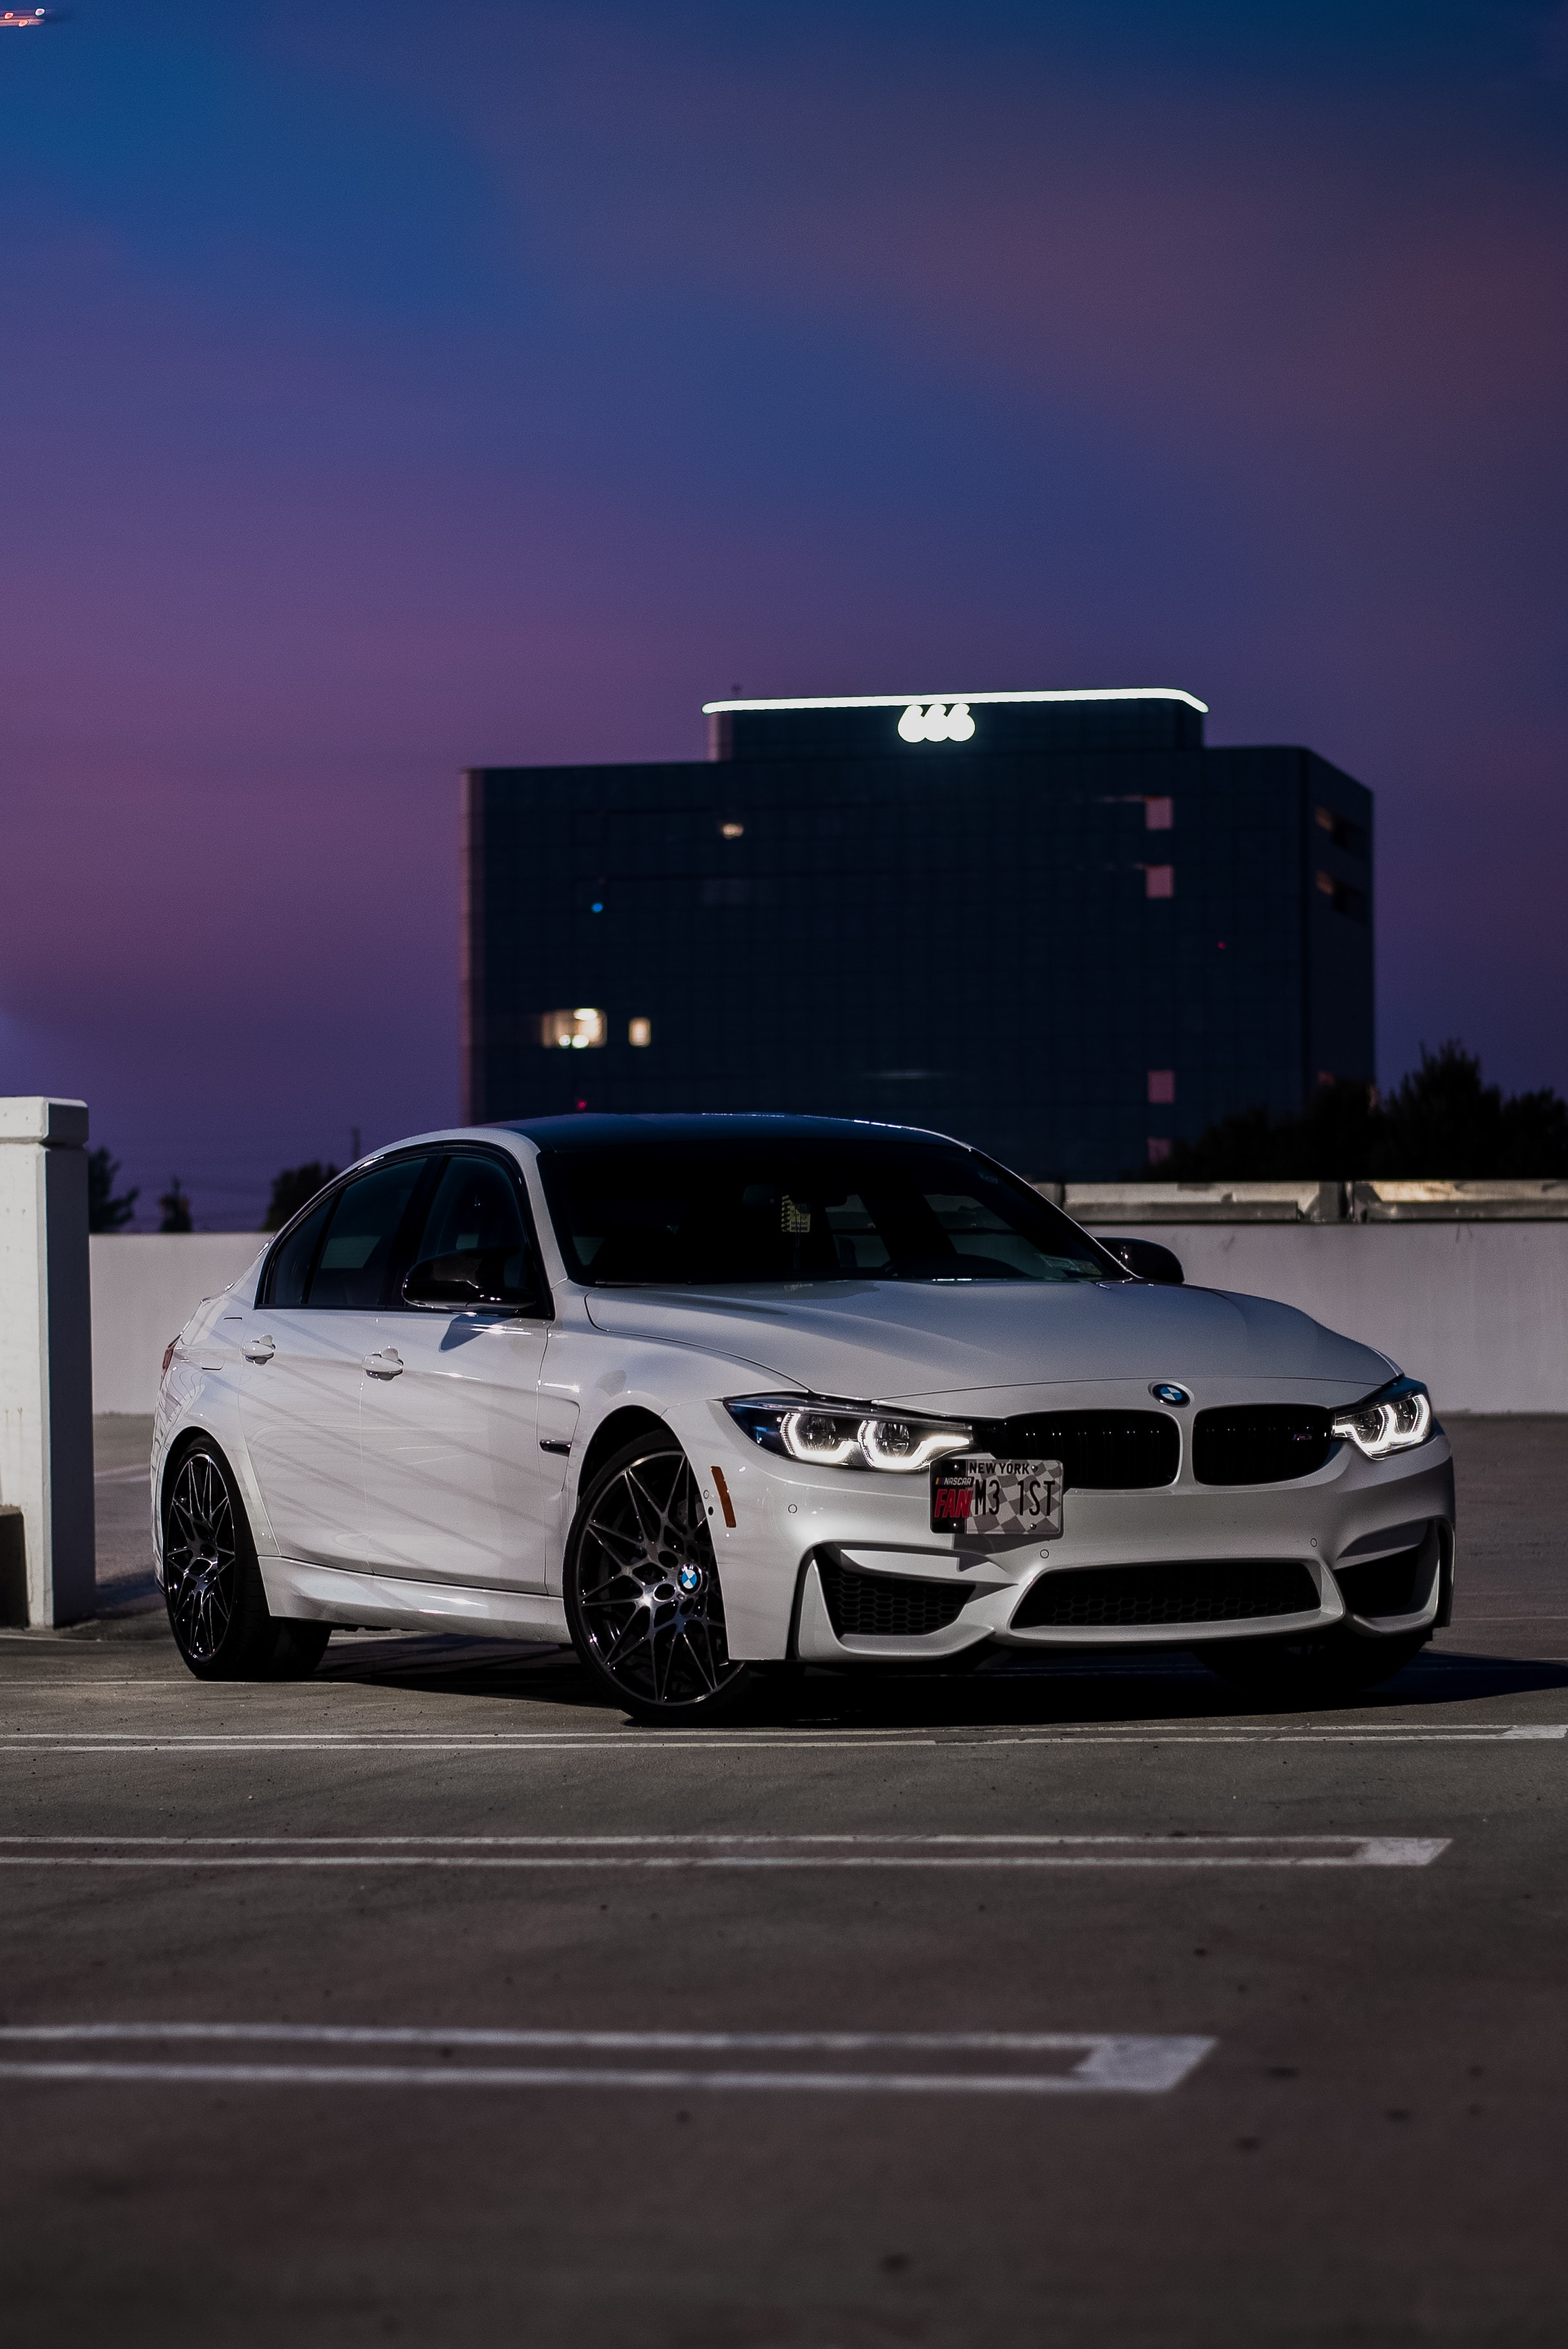 500 Bmw M3 Pictures Download Free Images Stock Photos On Unsplash